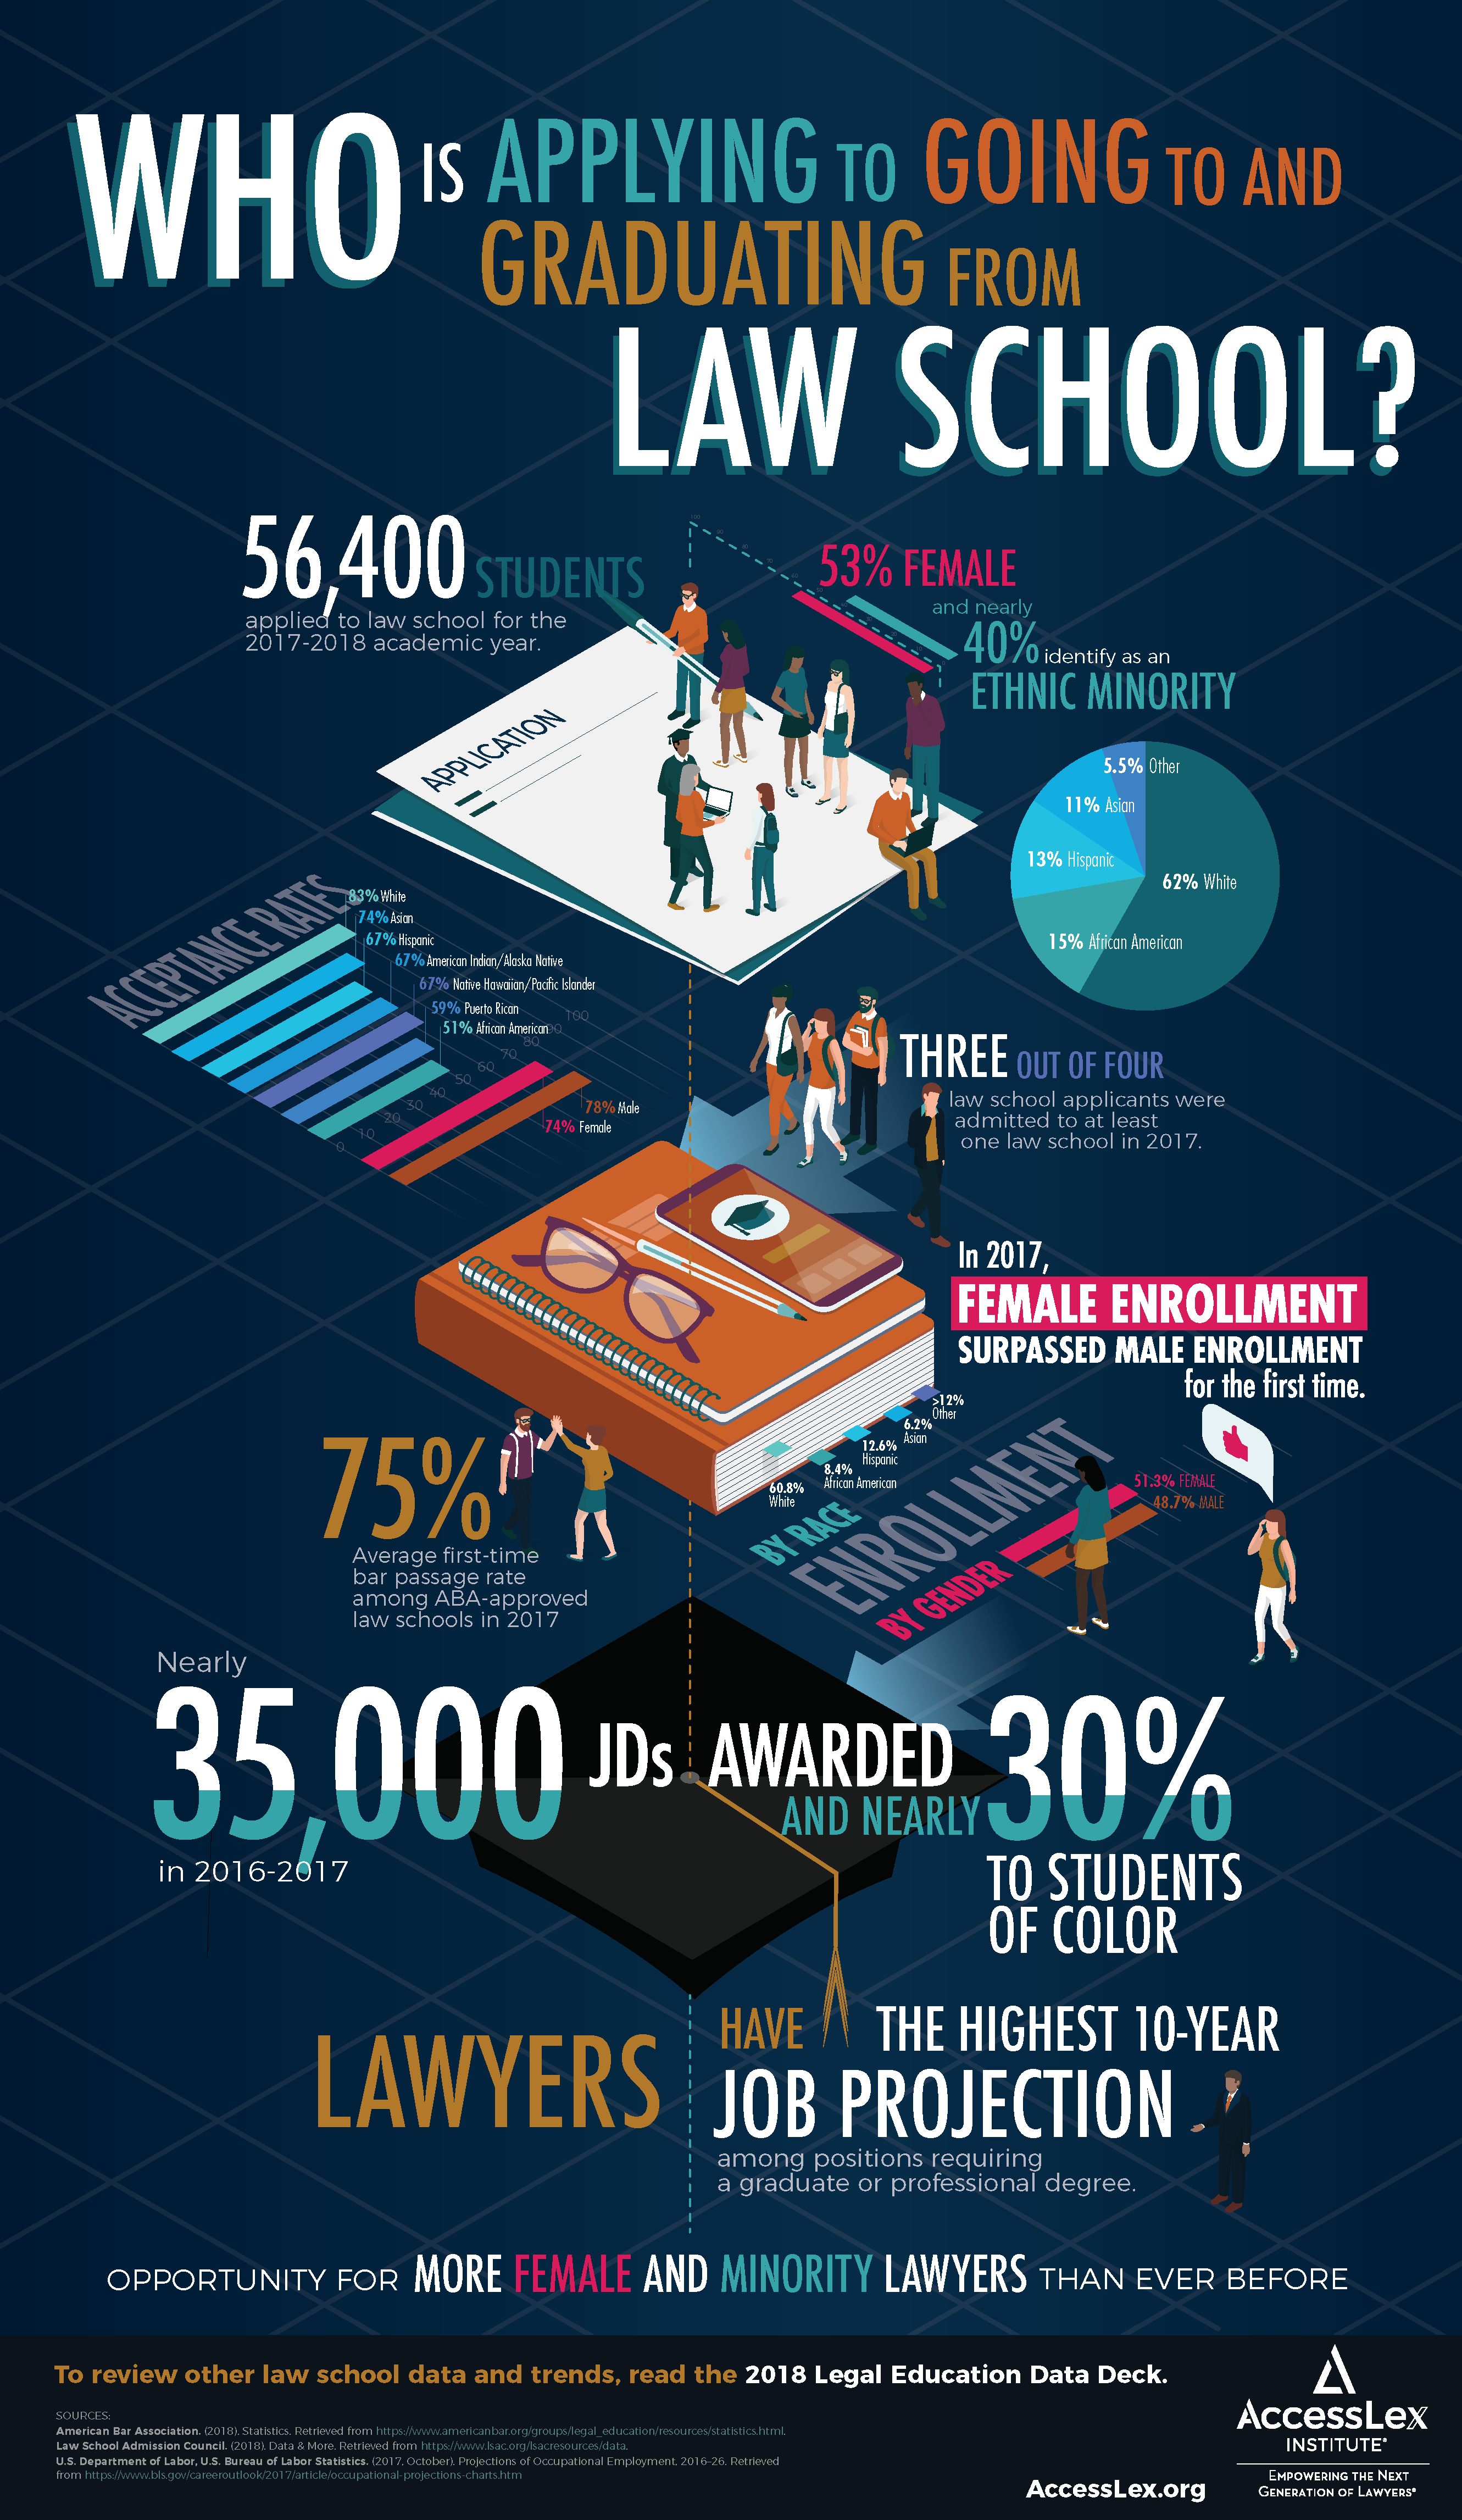 Legal Education Data Deck Infographic